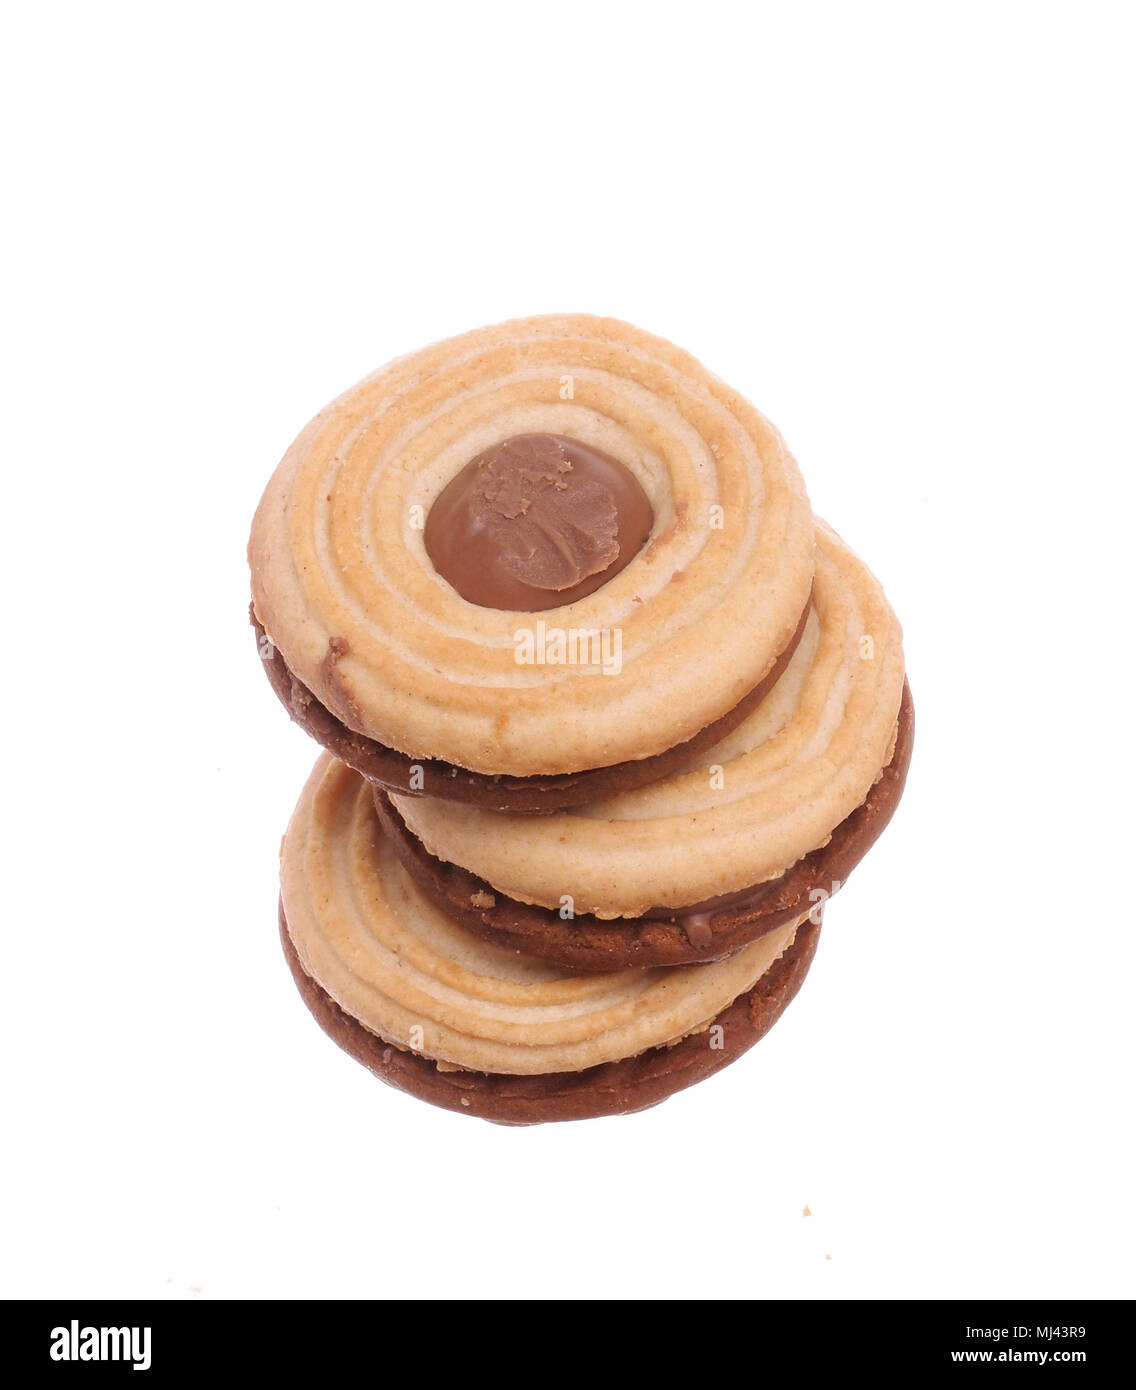 Stacked sandwich biscuits - Stock Image